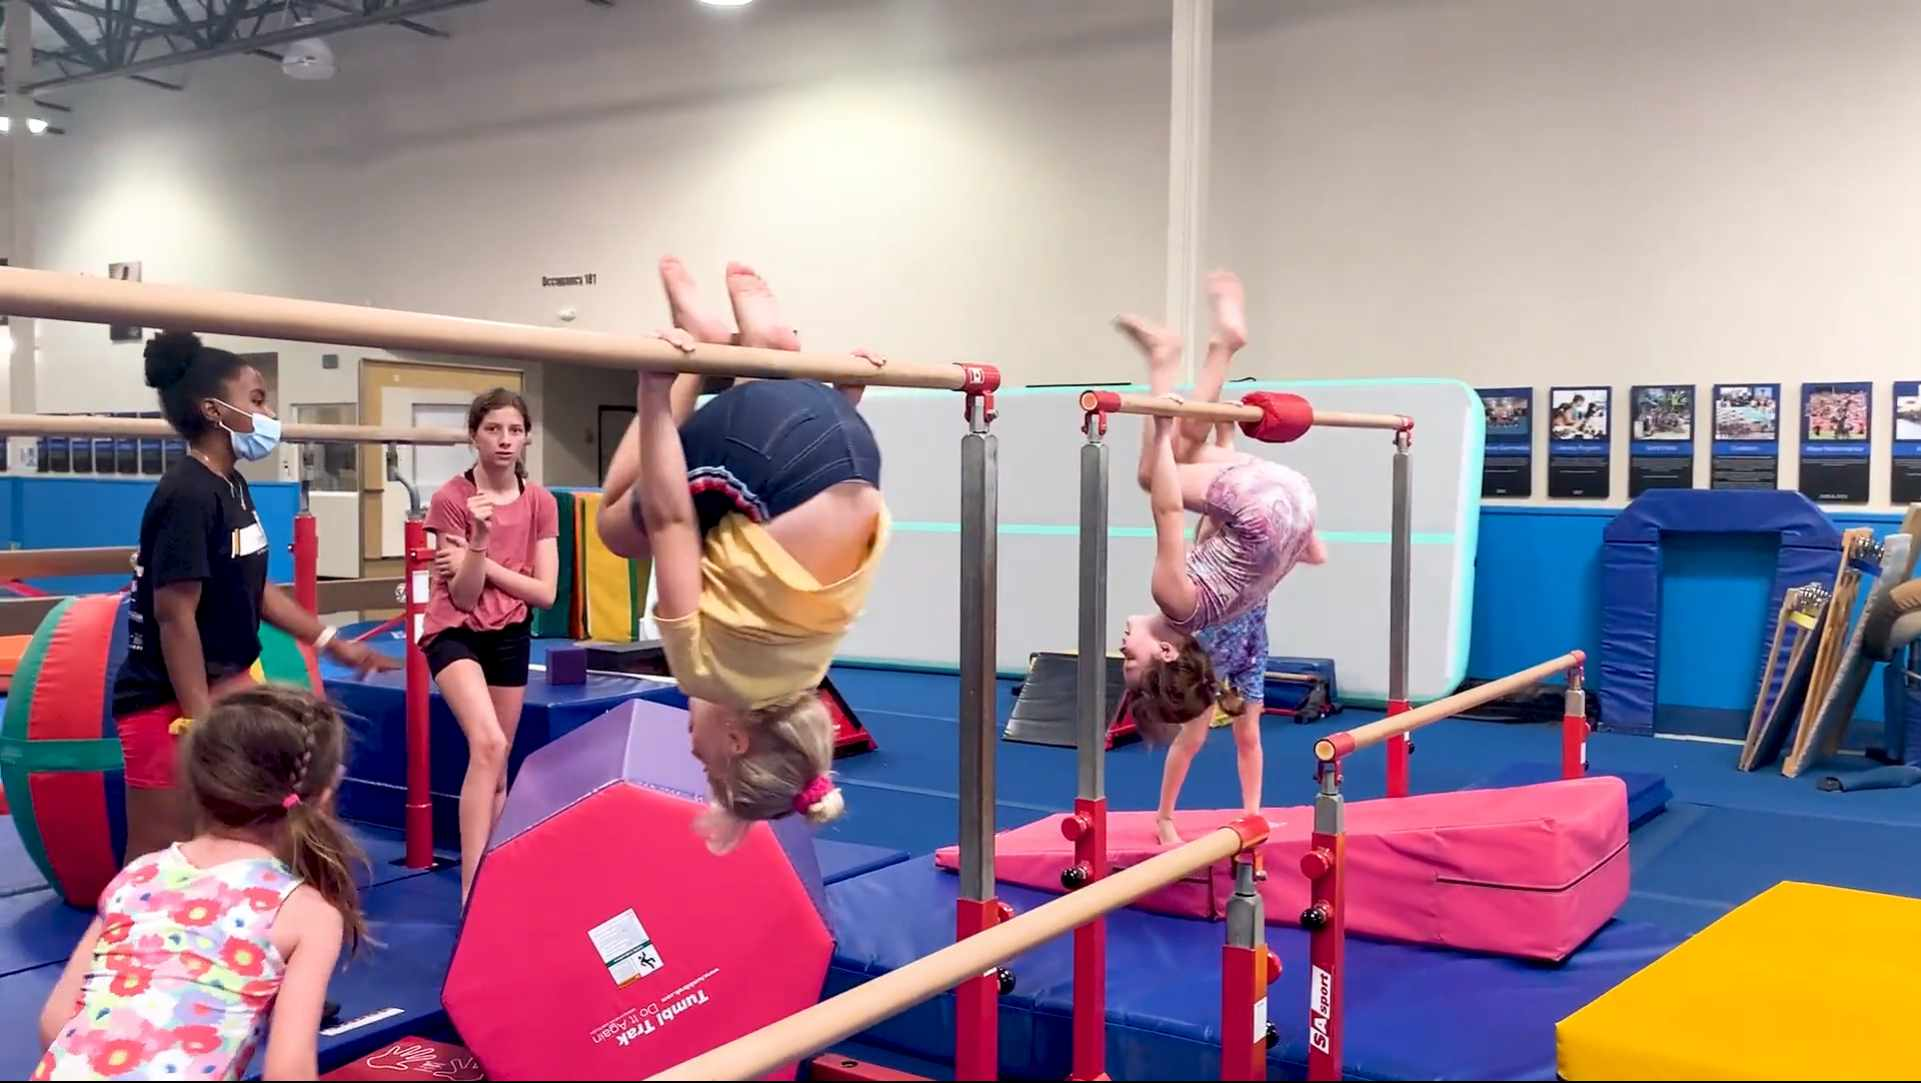 Children hanging upside down on small uneven bars